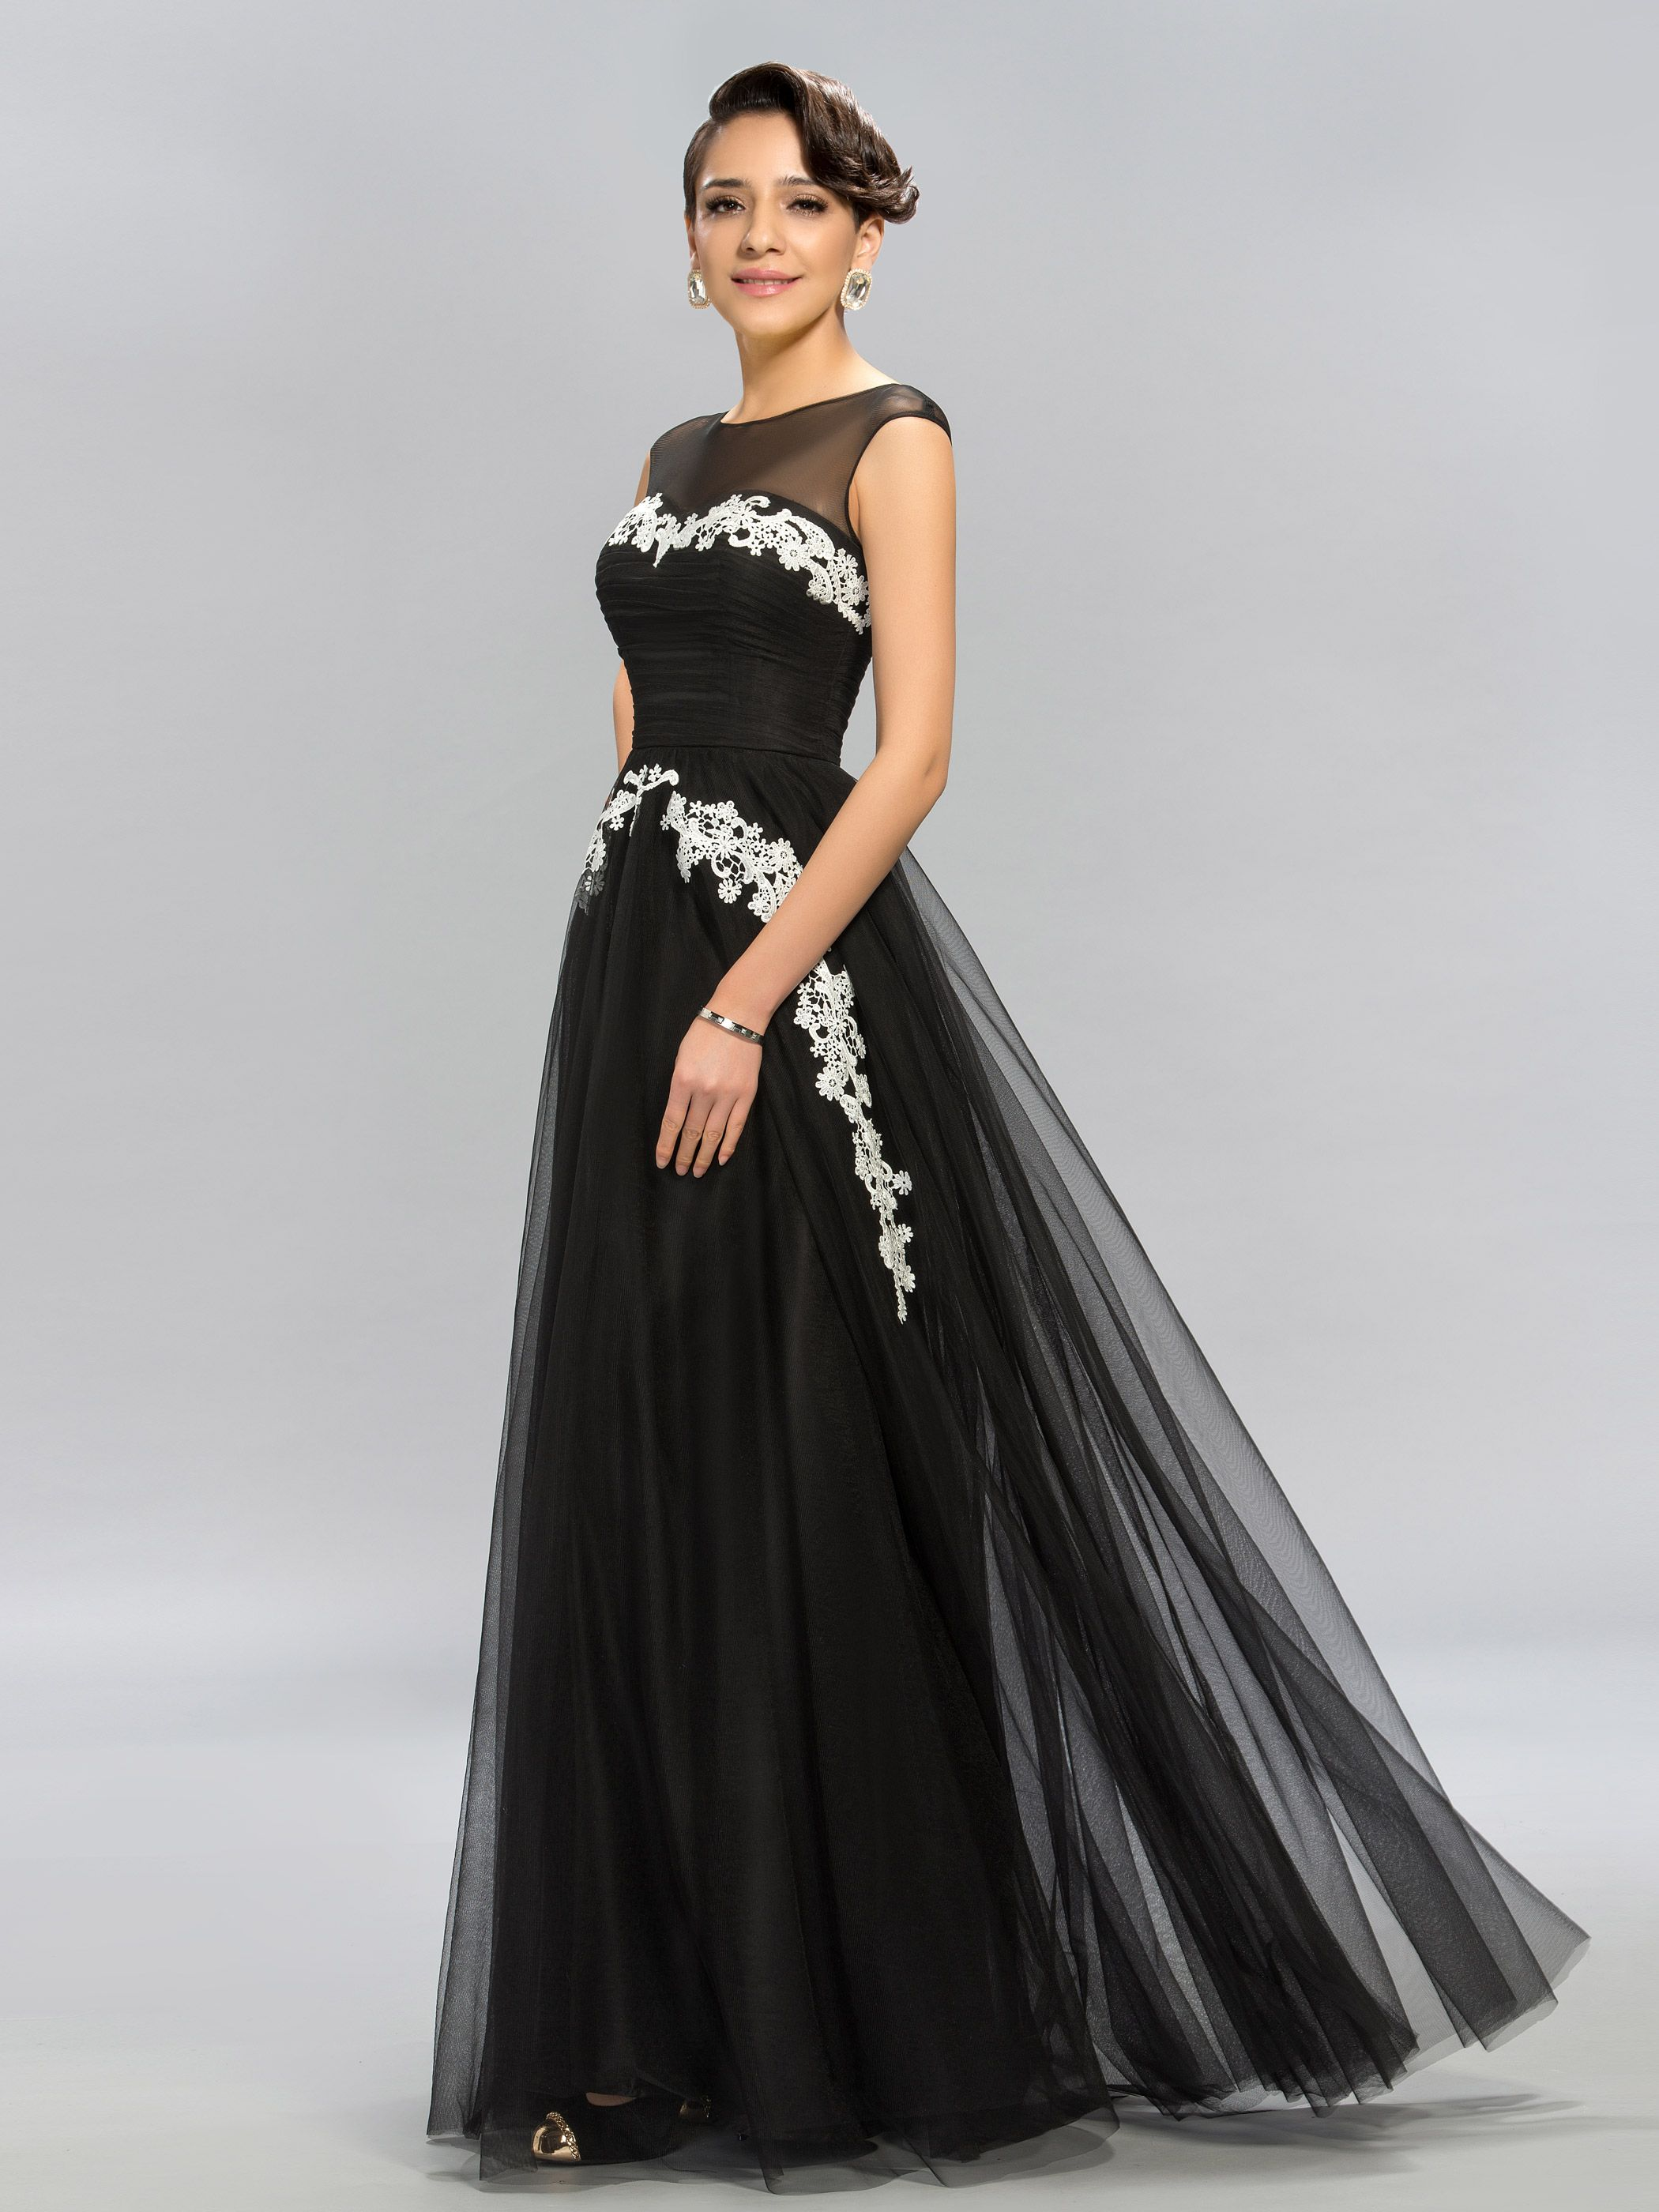 Timeless aline bateau neck appliques long formal dress formal